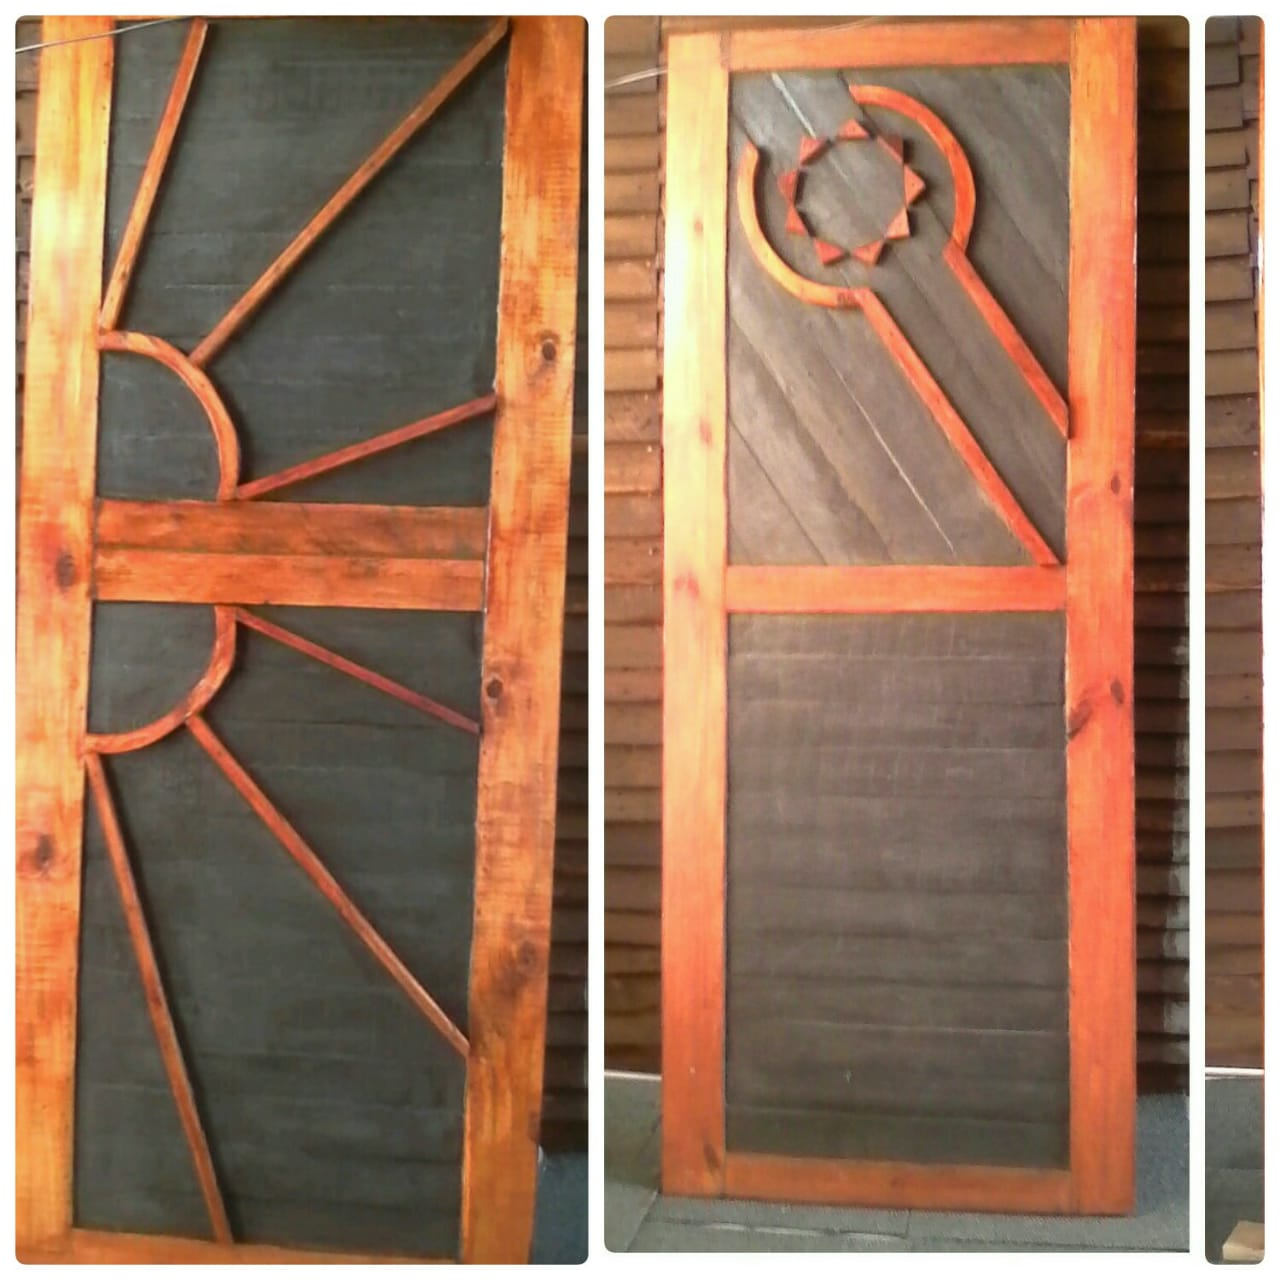 Beautiful Hand Crafted Doors and Headboards With Side Tables